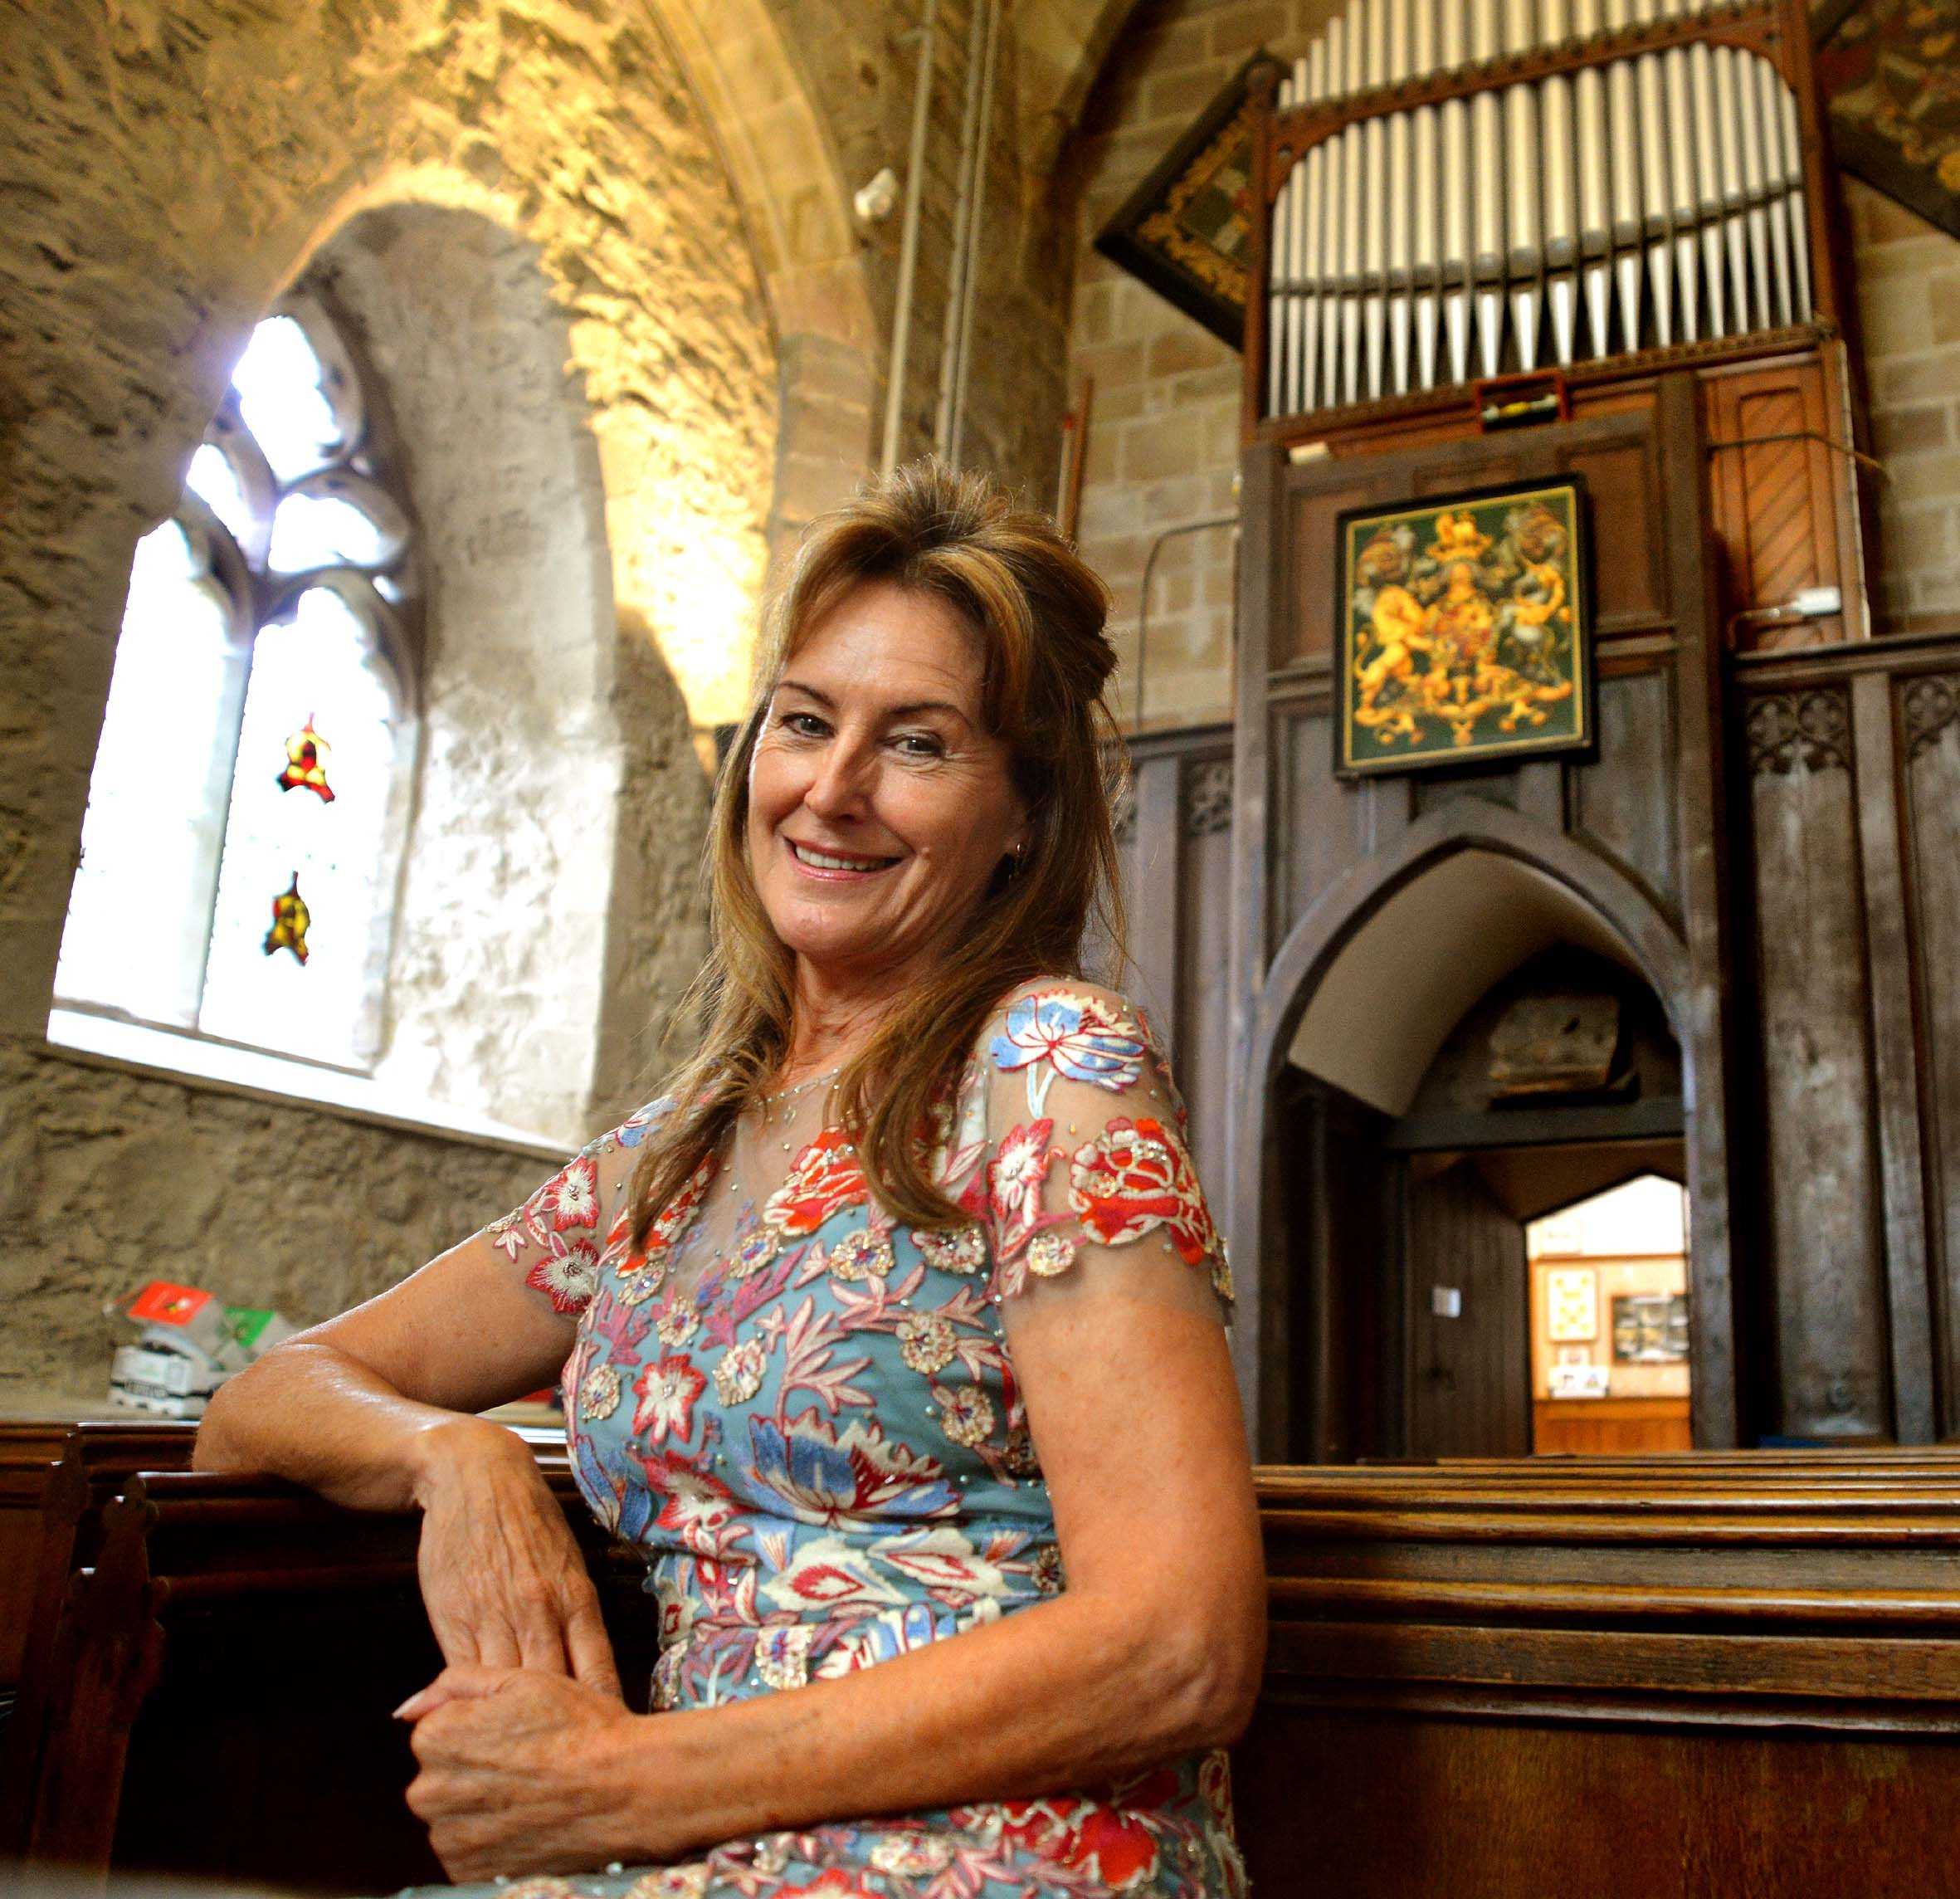 MGJAPrioryConcert..Soprano Linda Tolchard is to perform at Little Malvern Priory on September 4 to help raise money to restore the William Hill Organ there.